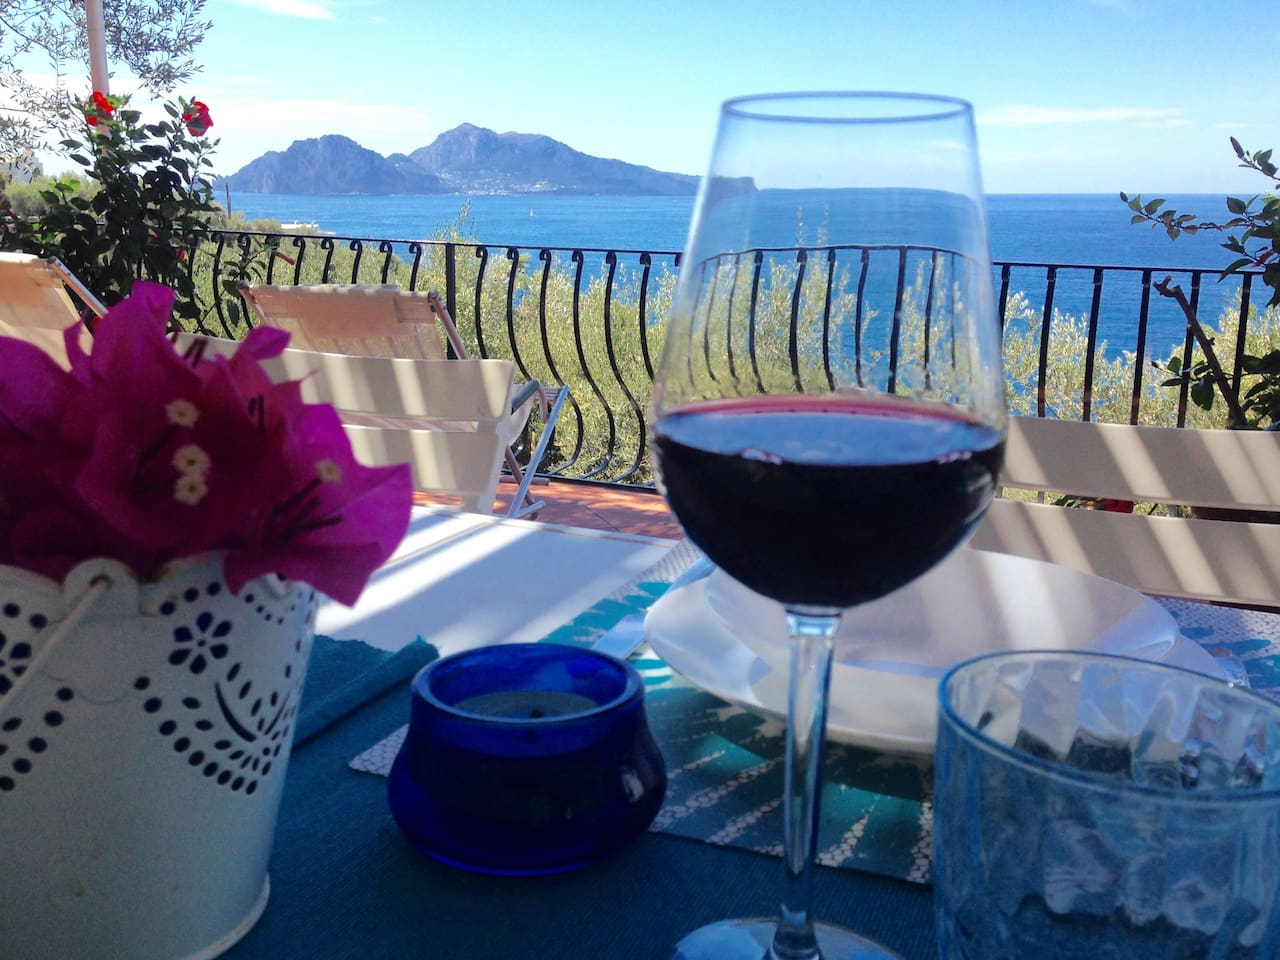 ...just seat with a glass of wine and enjoy an amazing view!